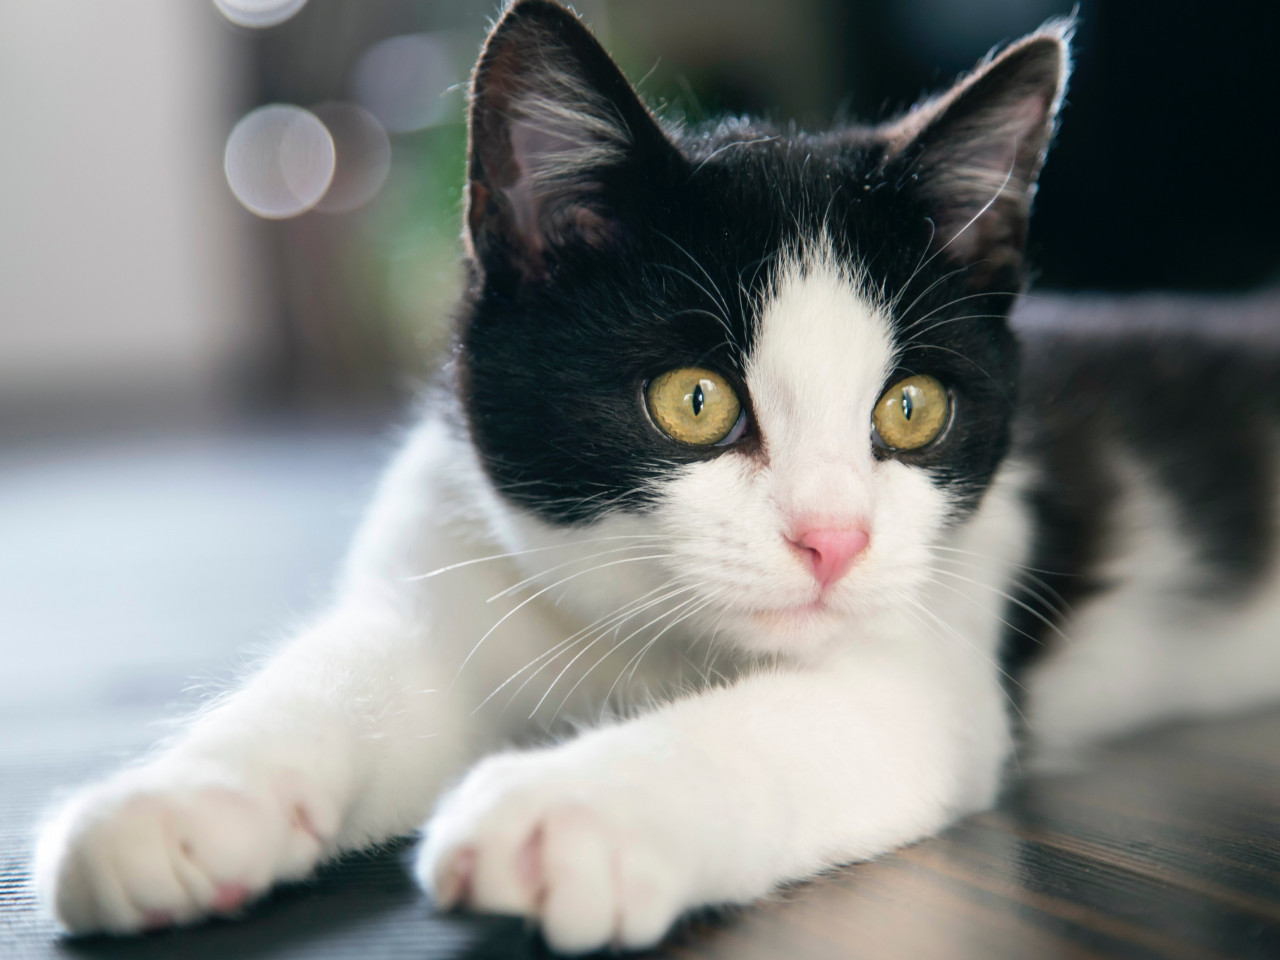 Black and white cat | 1280x960 wallpaper